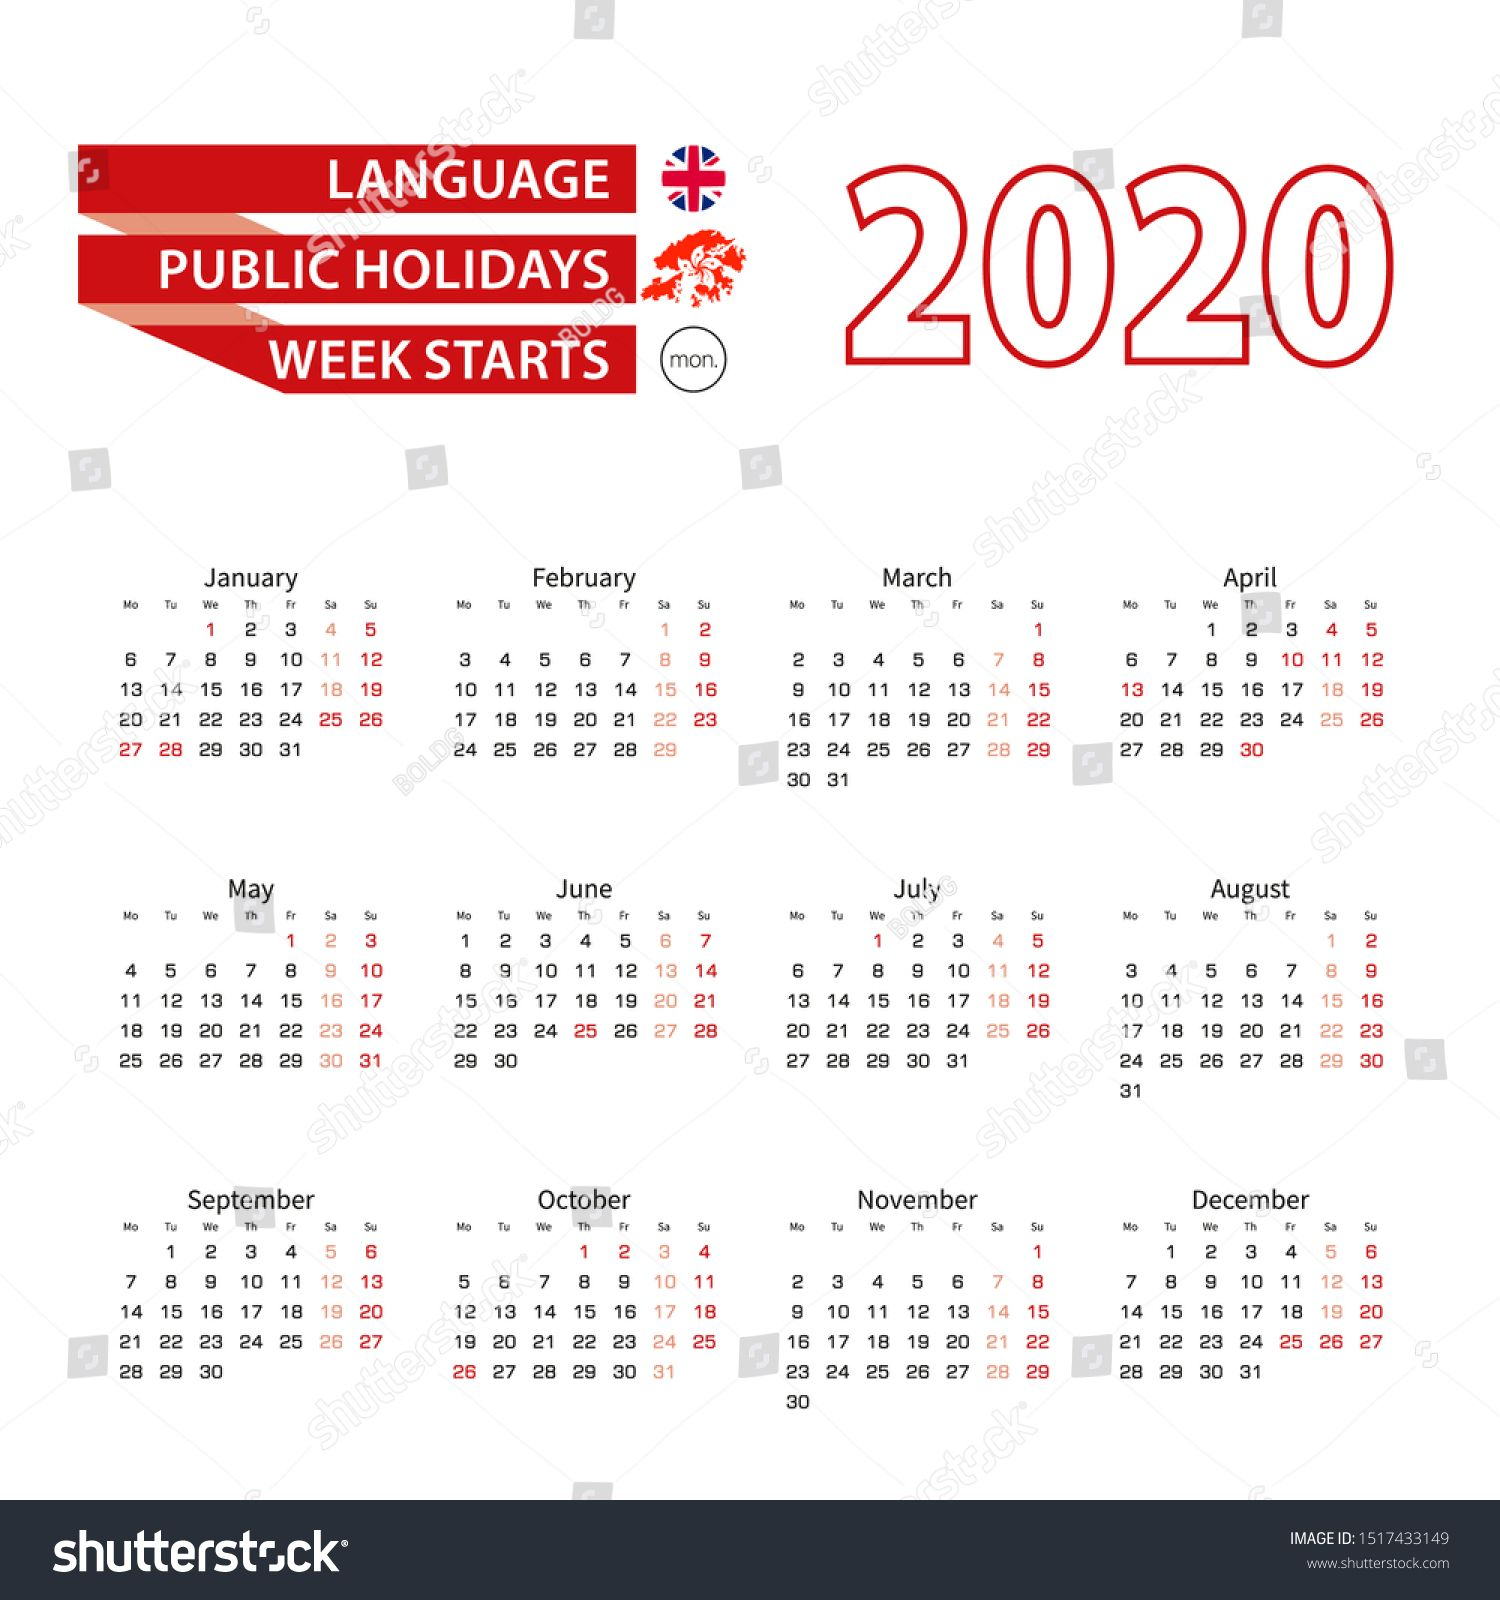 Calendar 2020 In English Language With Public Holidays The